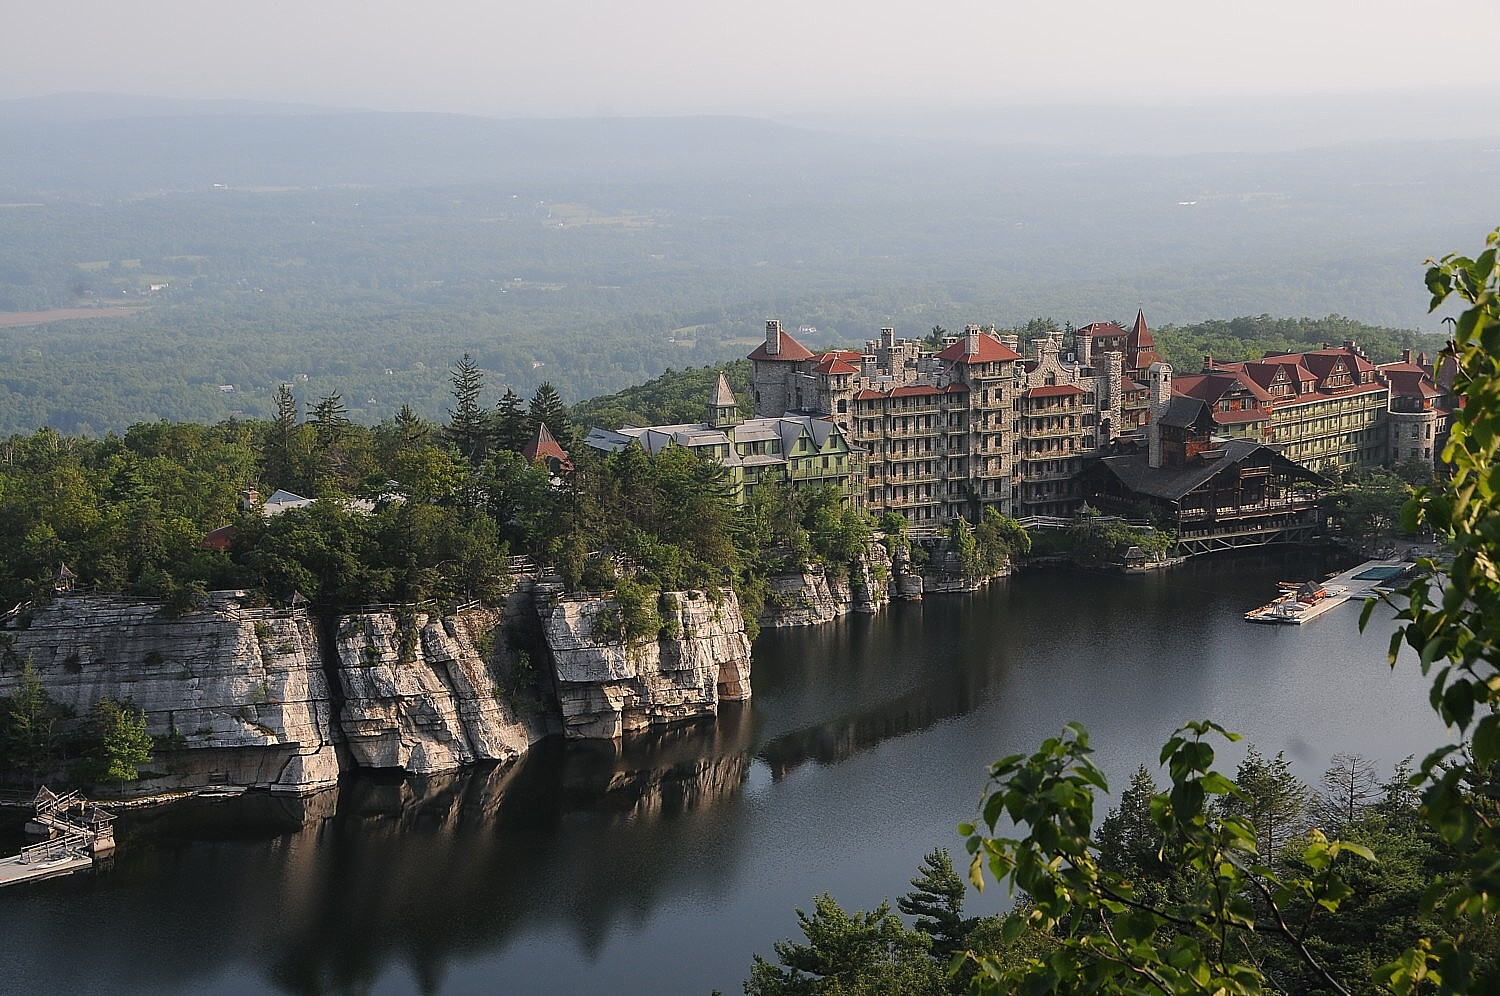 Mohonk Mountain House (1869) New Paltz, New York, still owned and managed by the Smiley Family, is a finalist for Legendary Family Historic Hoteliers of the Year © 2016 Karen Rubin/goingplacesfarandnear.com